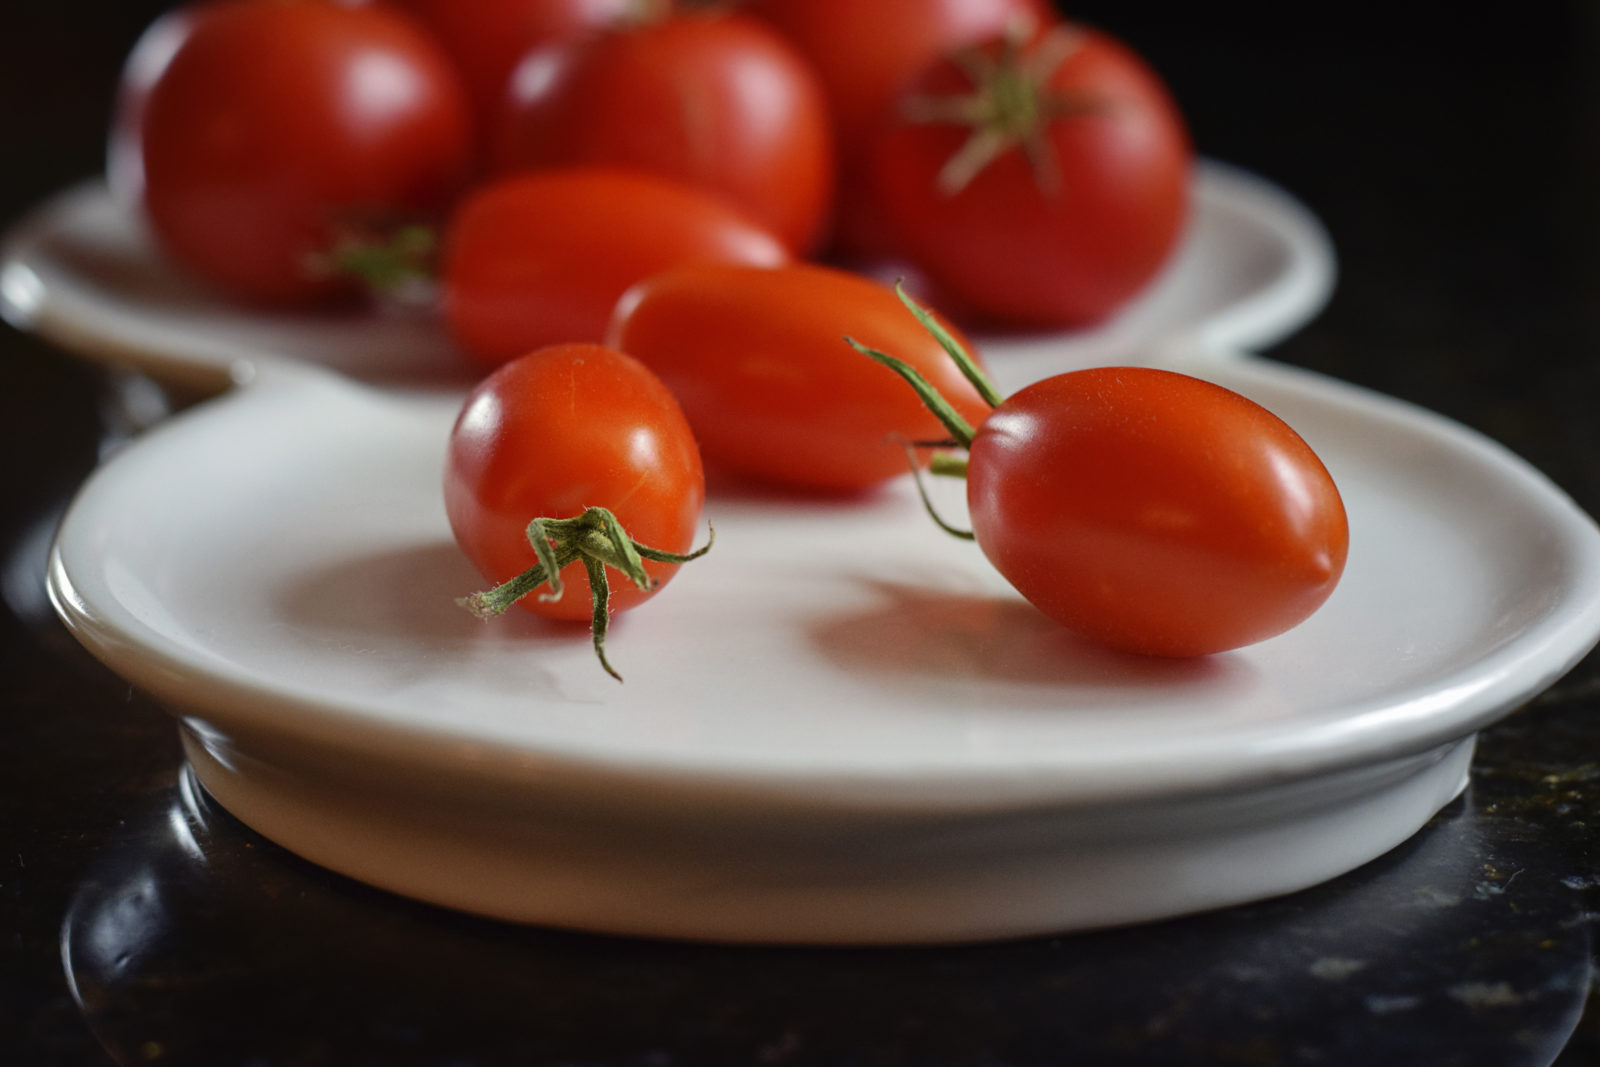 Tomato Nutrition | Tomato Health Benefits